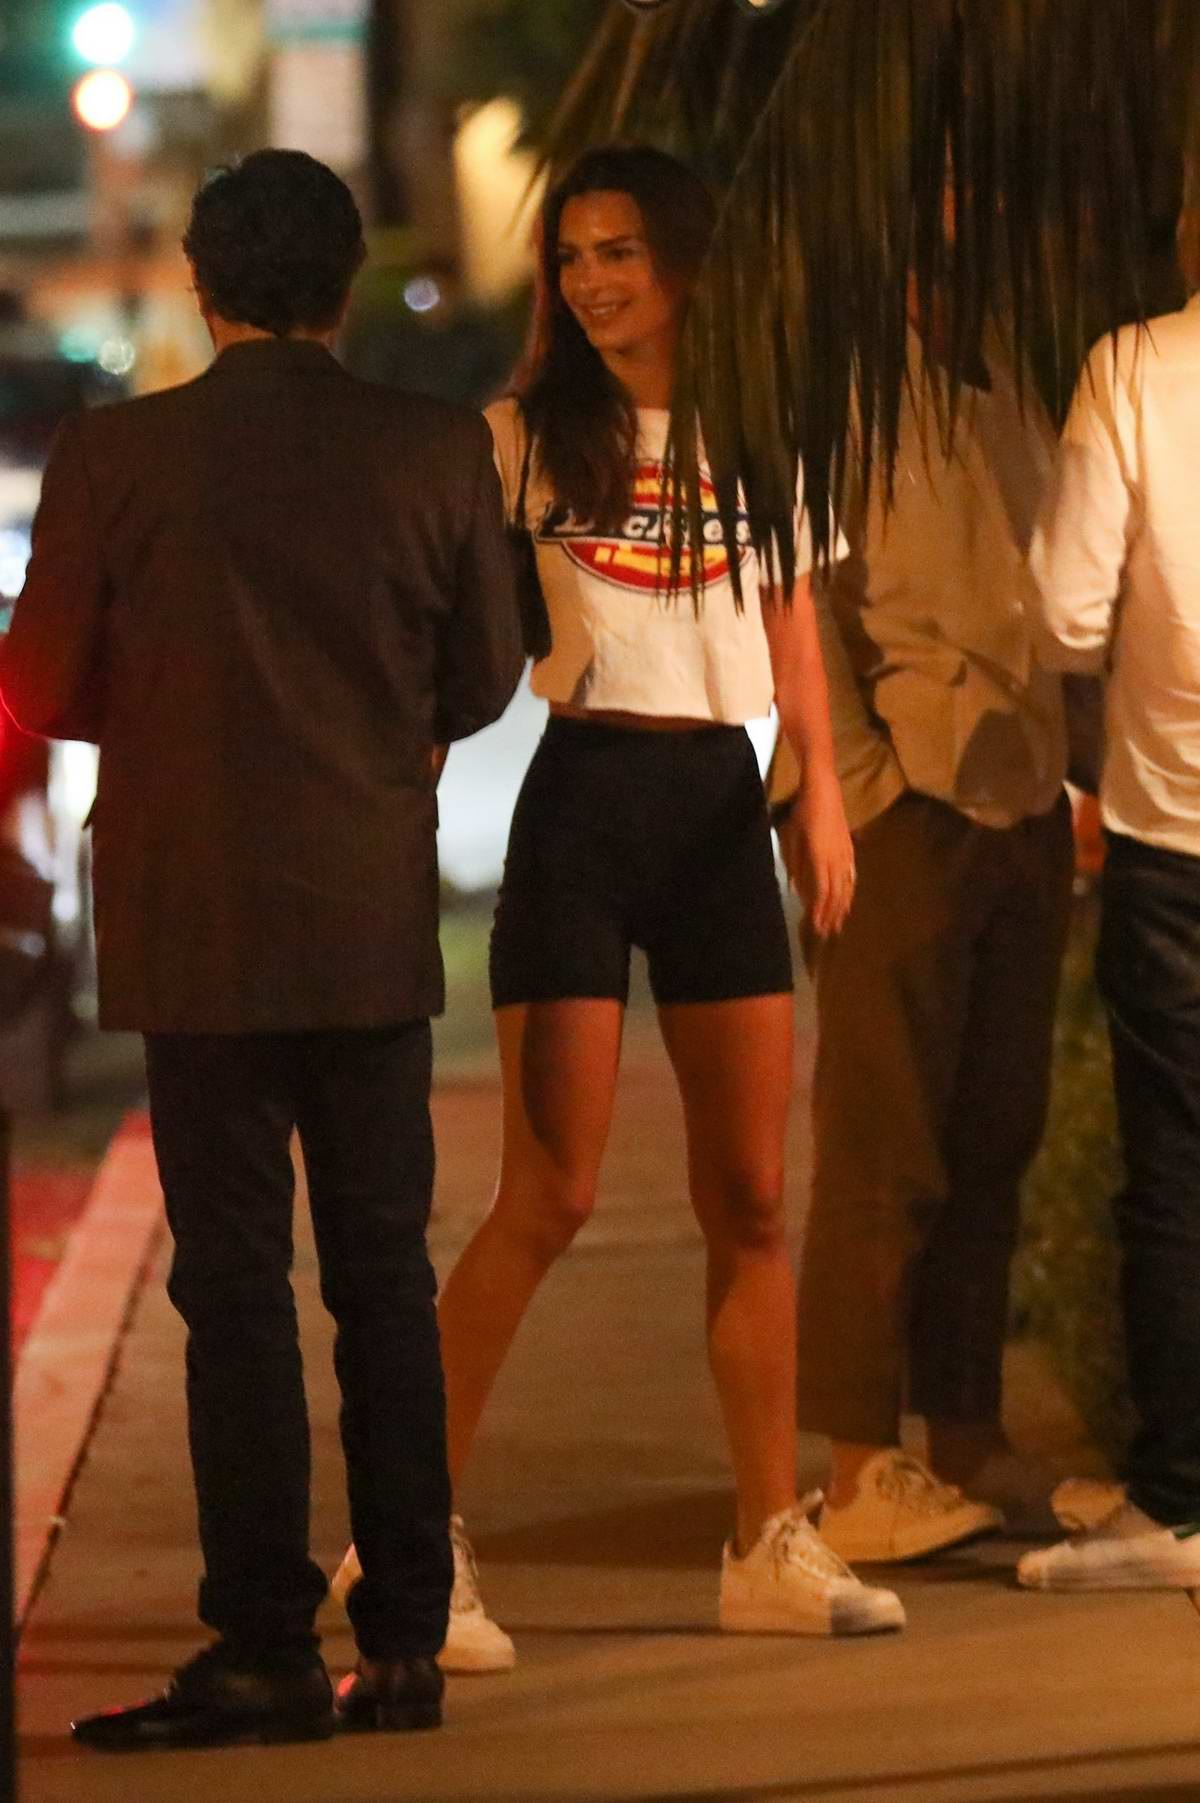 Emily Ratajkowski arrives for a party at The Bungalow in West Hollywood, Los Angeles